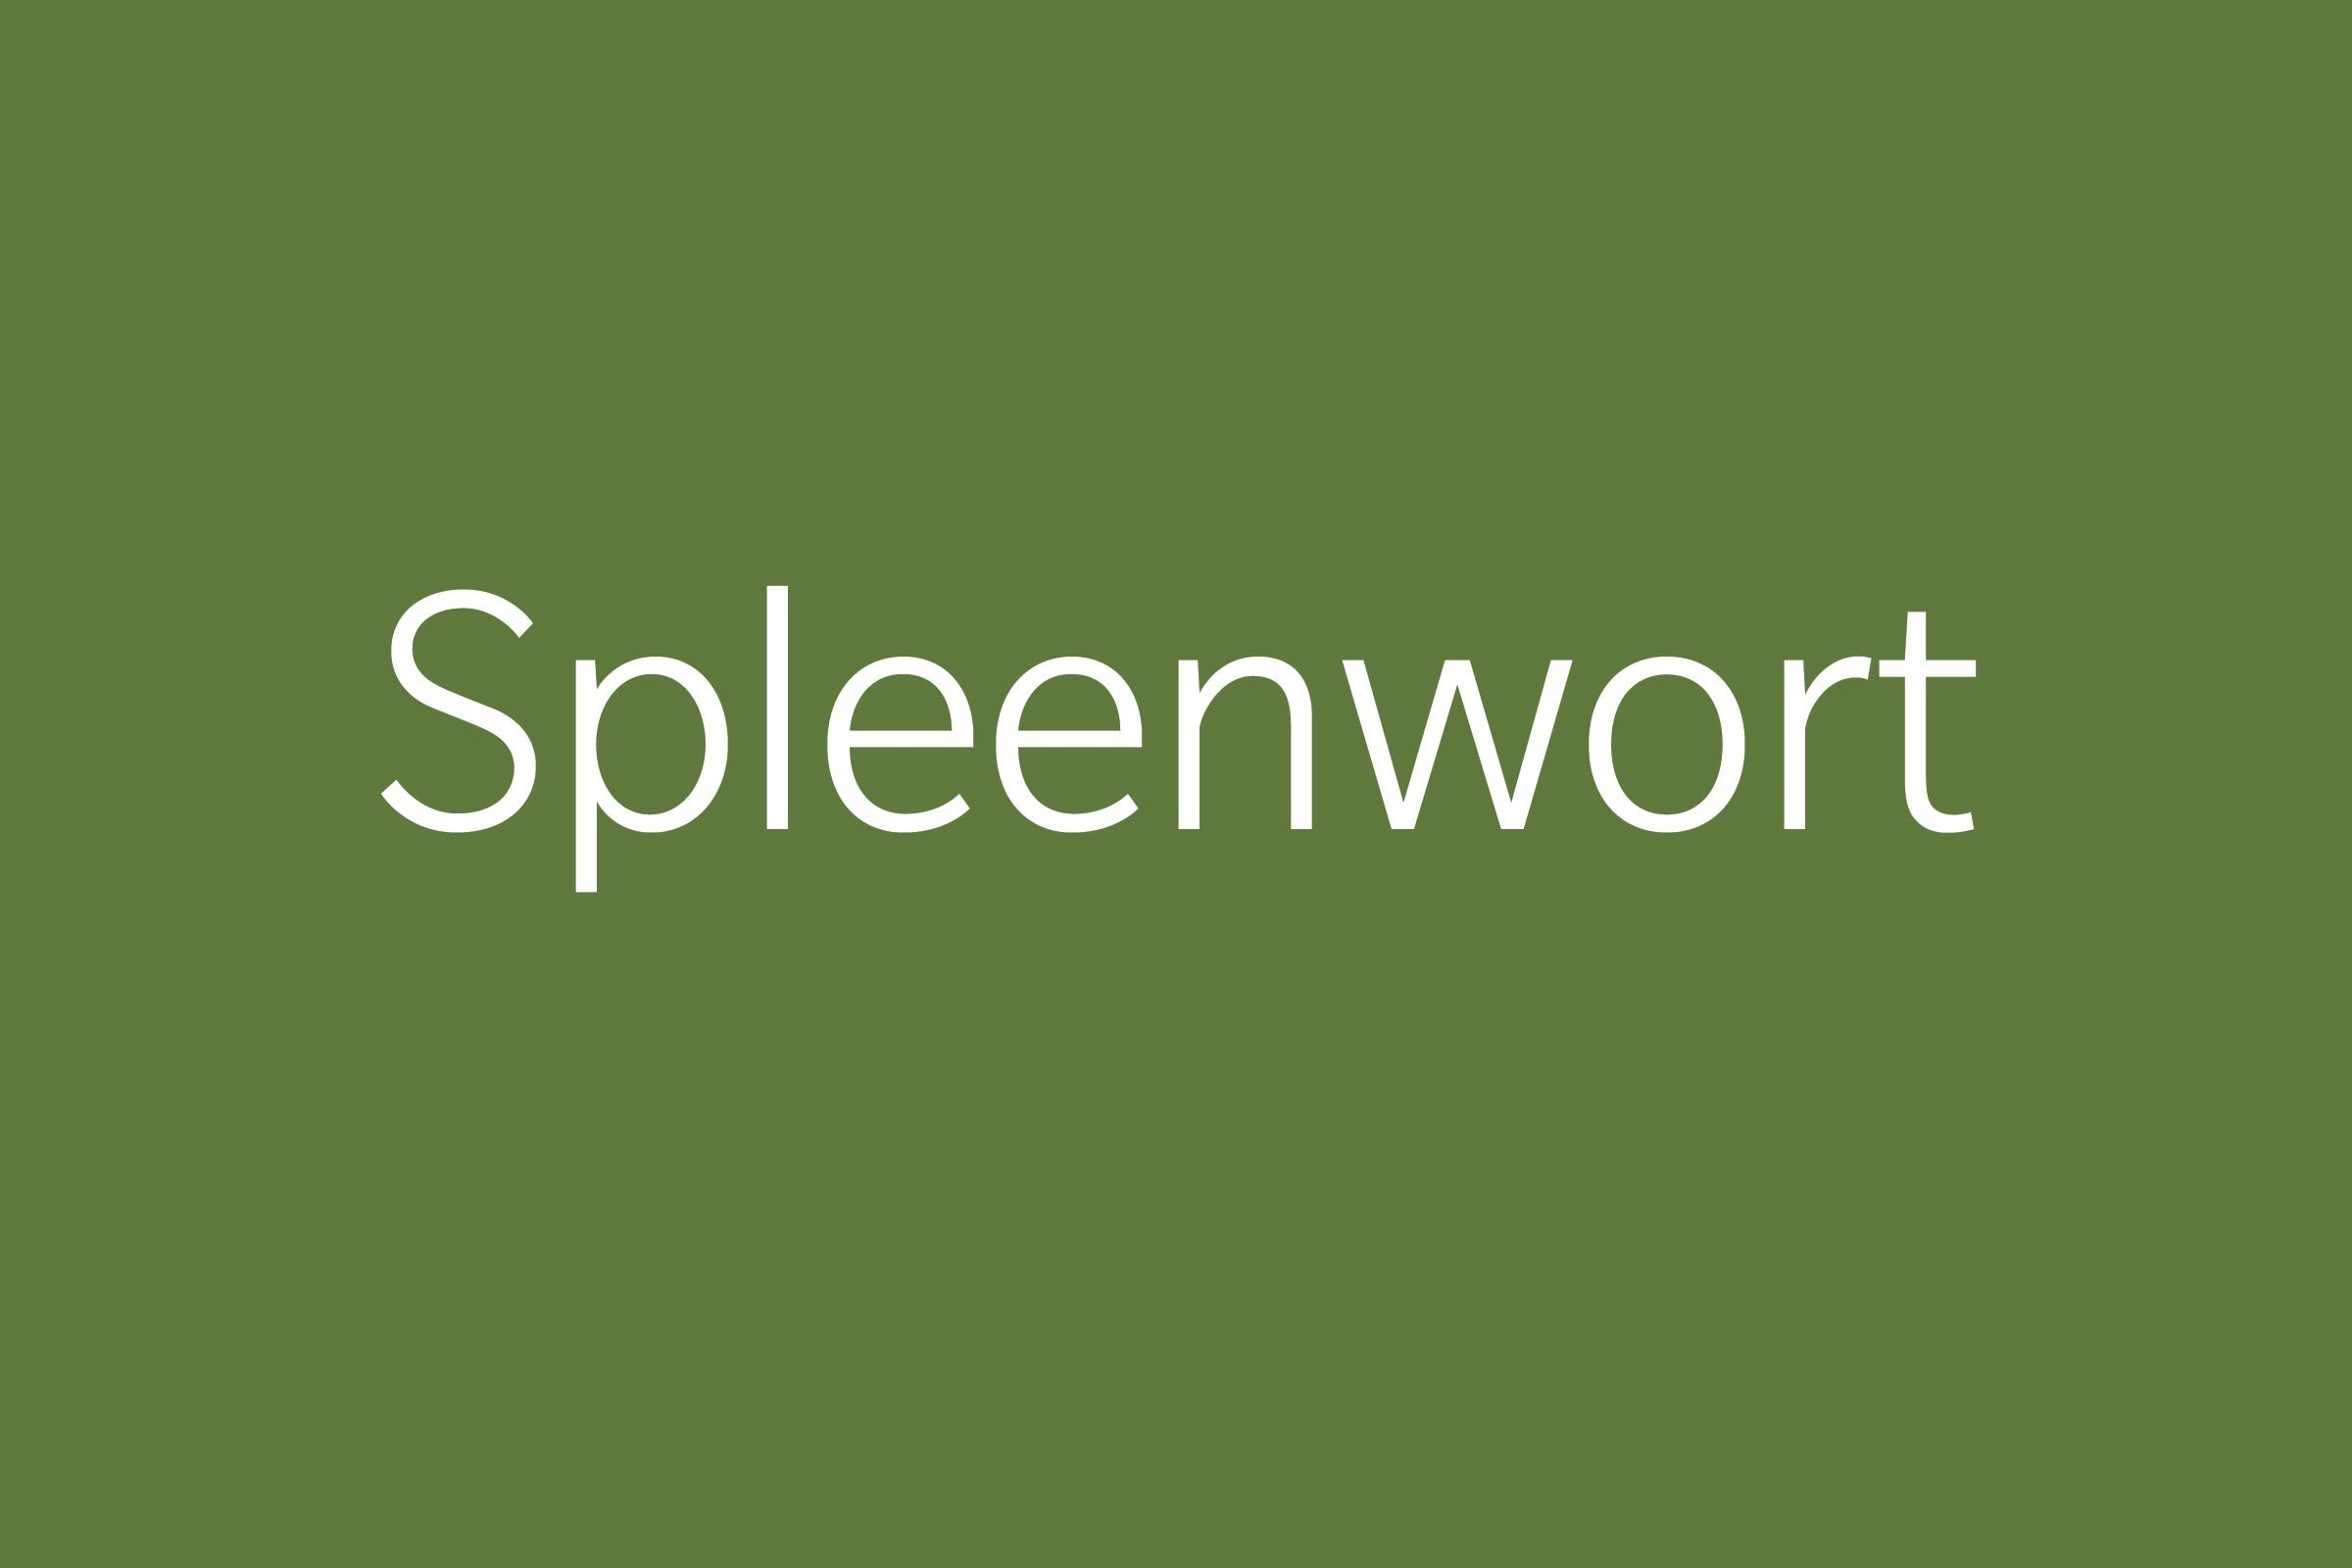 spleenwort funny word Funny words